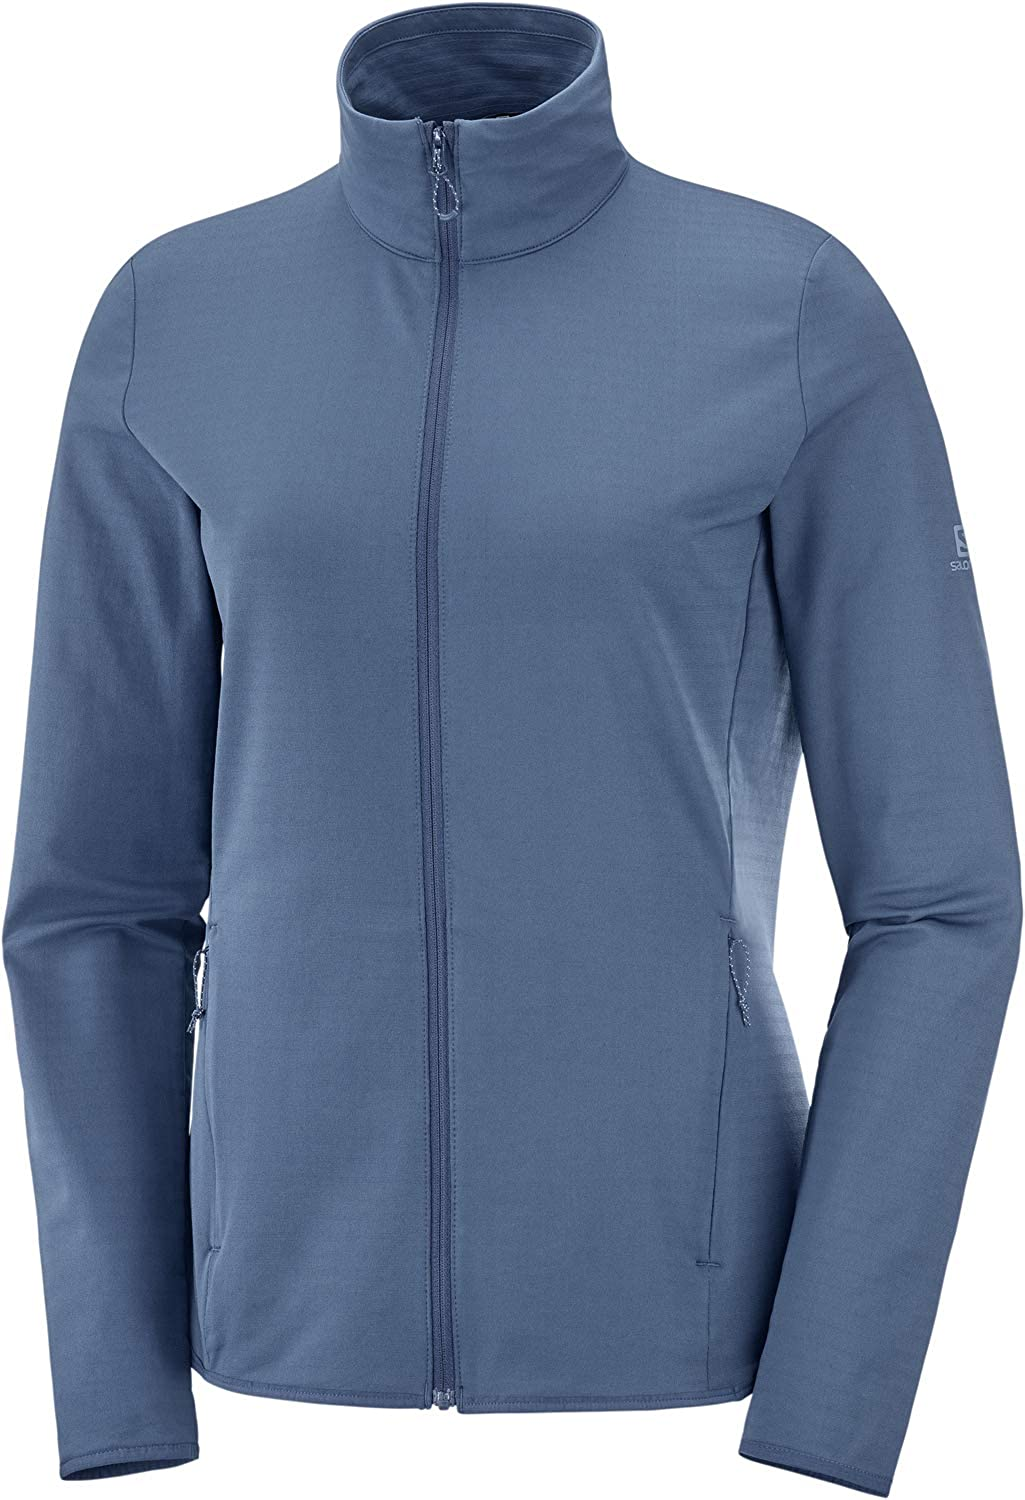 Salomon womens Max 51% Max 89% OFF OFF Outrack Zip Full